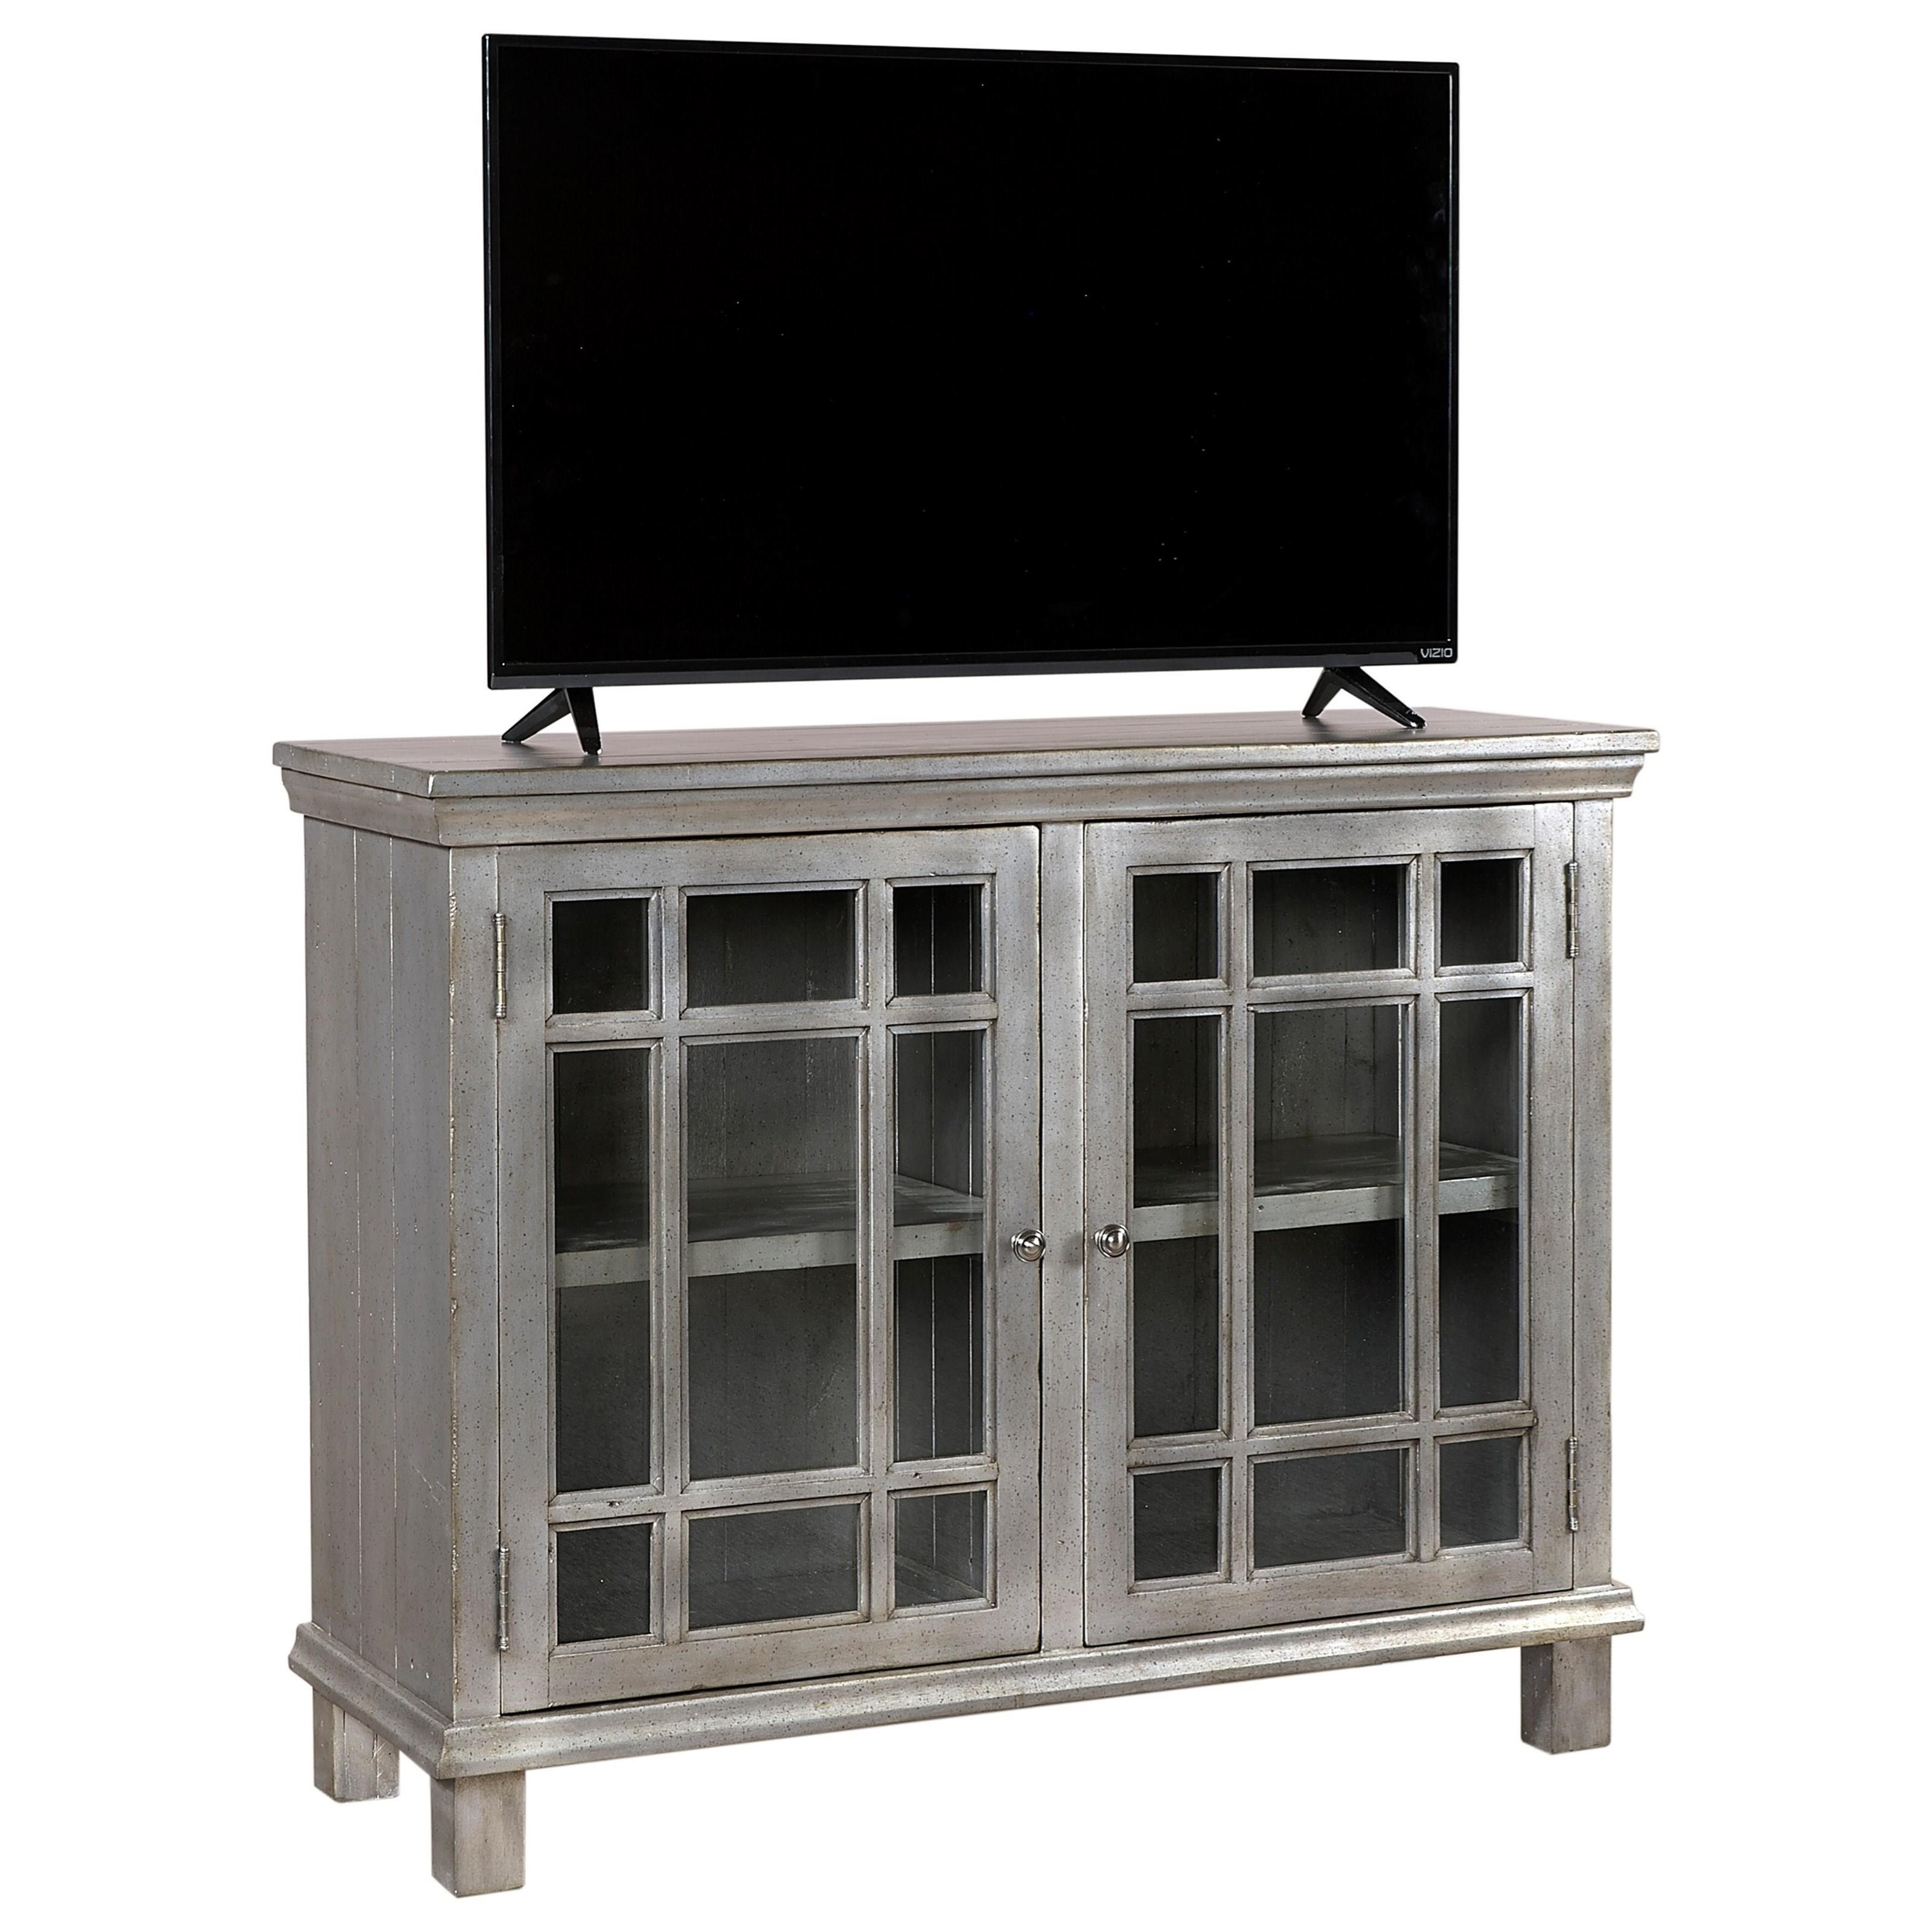 "Aspenhome Preferences 45"" Console  - Item Number: I44-245-MET"